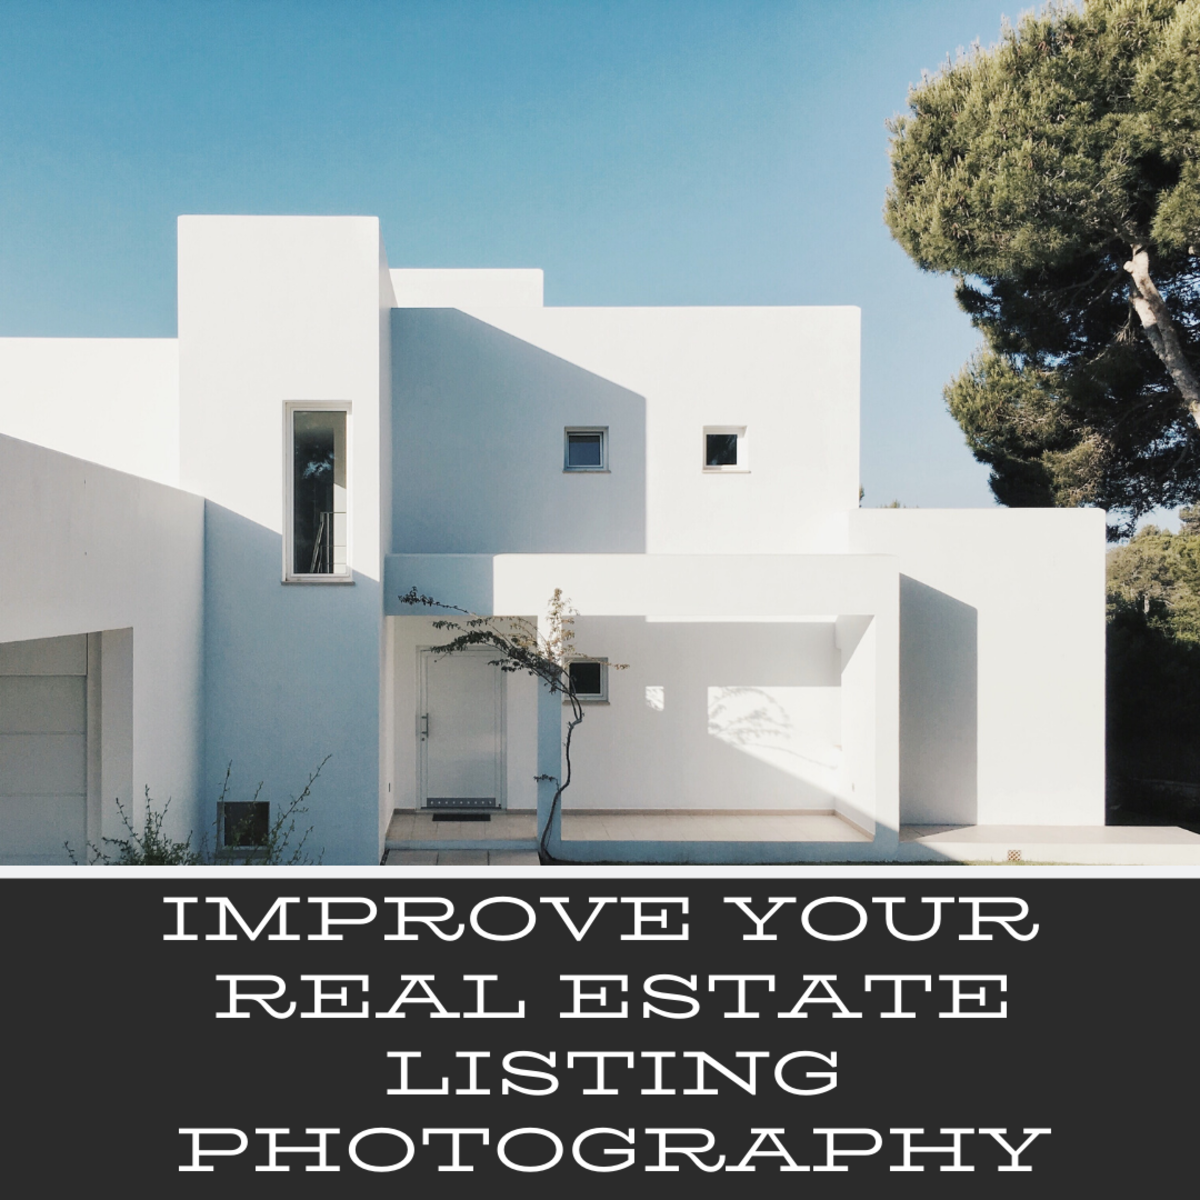 5 Ways to Improve Your Real Estate Listing Photography